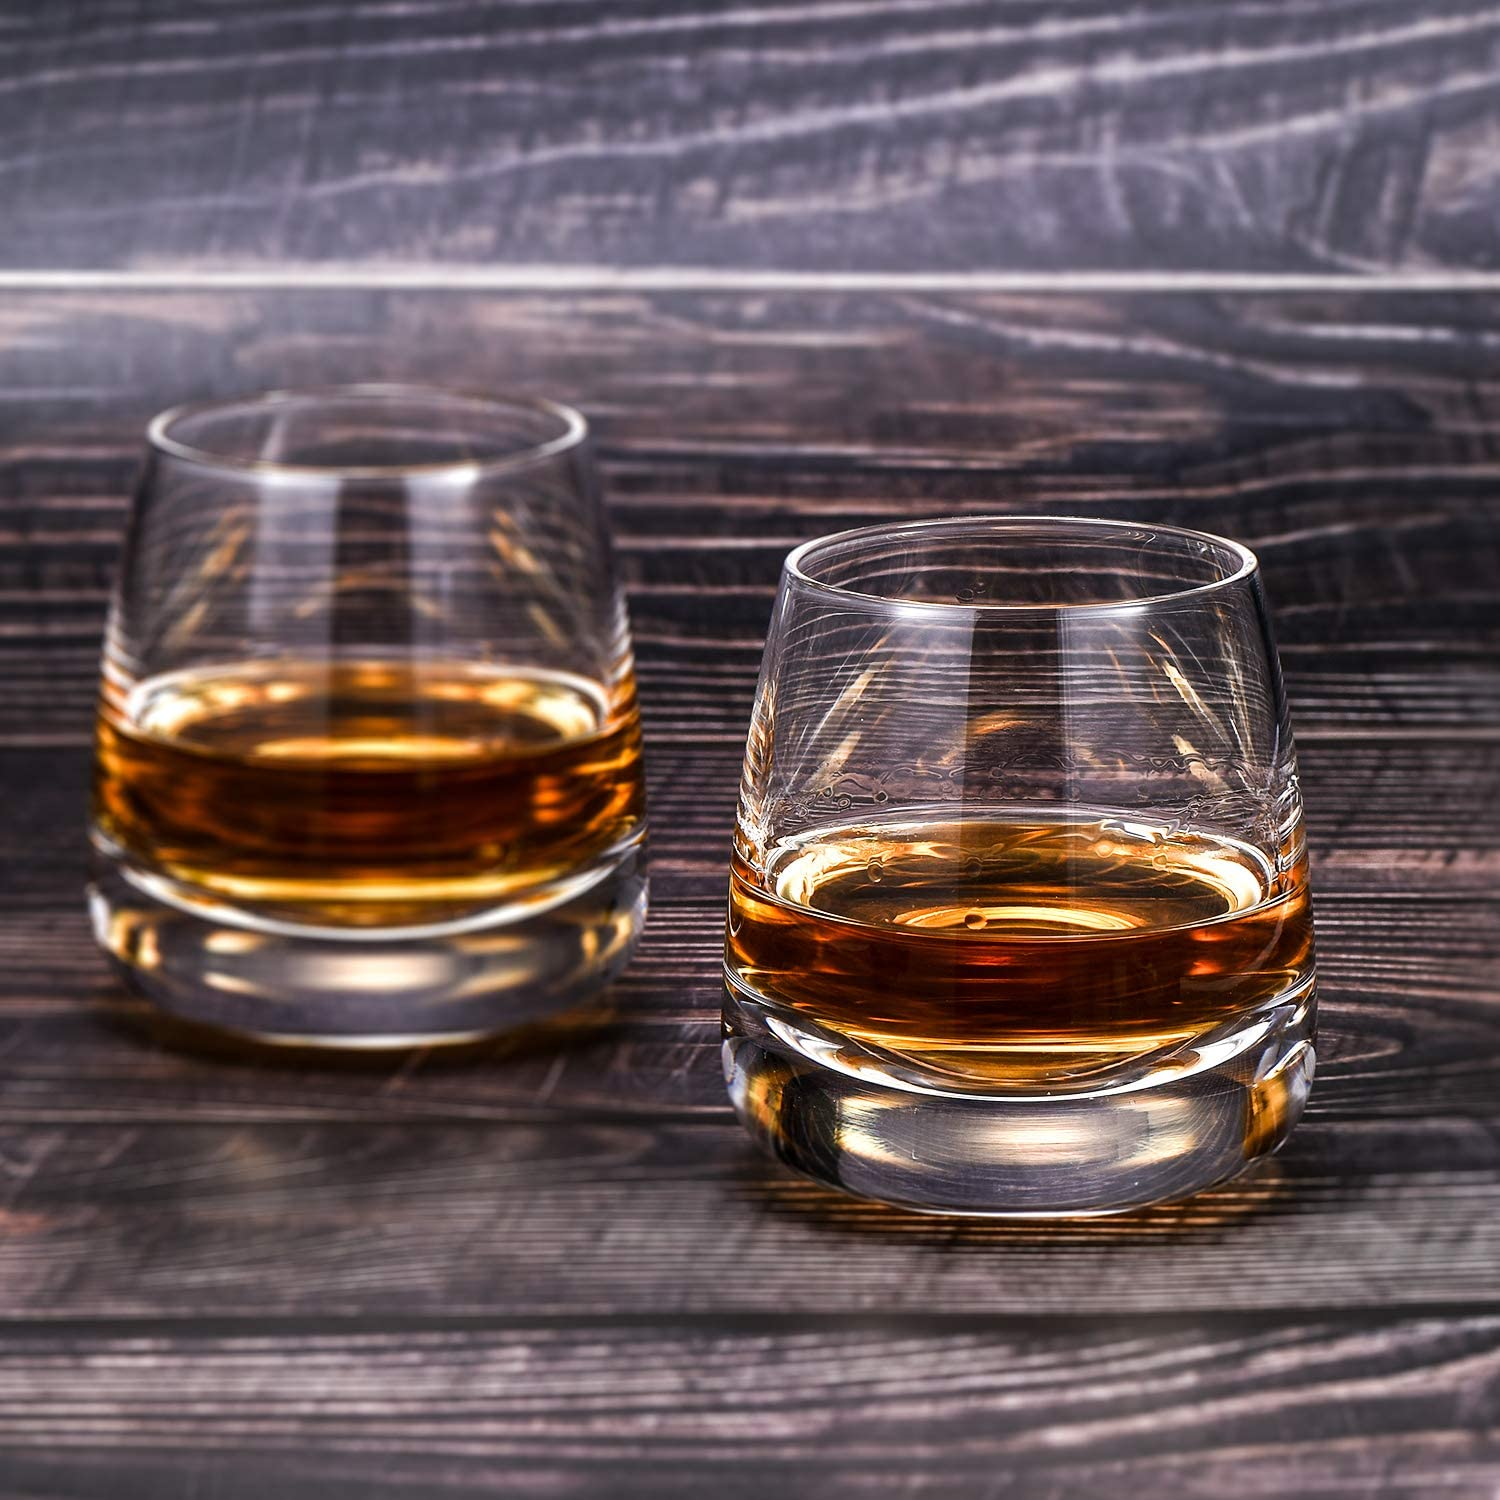 TOOWELL Old Fashioned Whiskey Glass Set of 2 Cocktails Glasses Hand Blown Scotch Glass Tumblers Heavy Base 9OZ Rocks Glasses Perfect for Bourbon Scotch Manhattans Cocktails